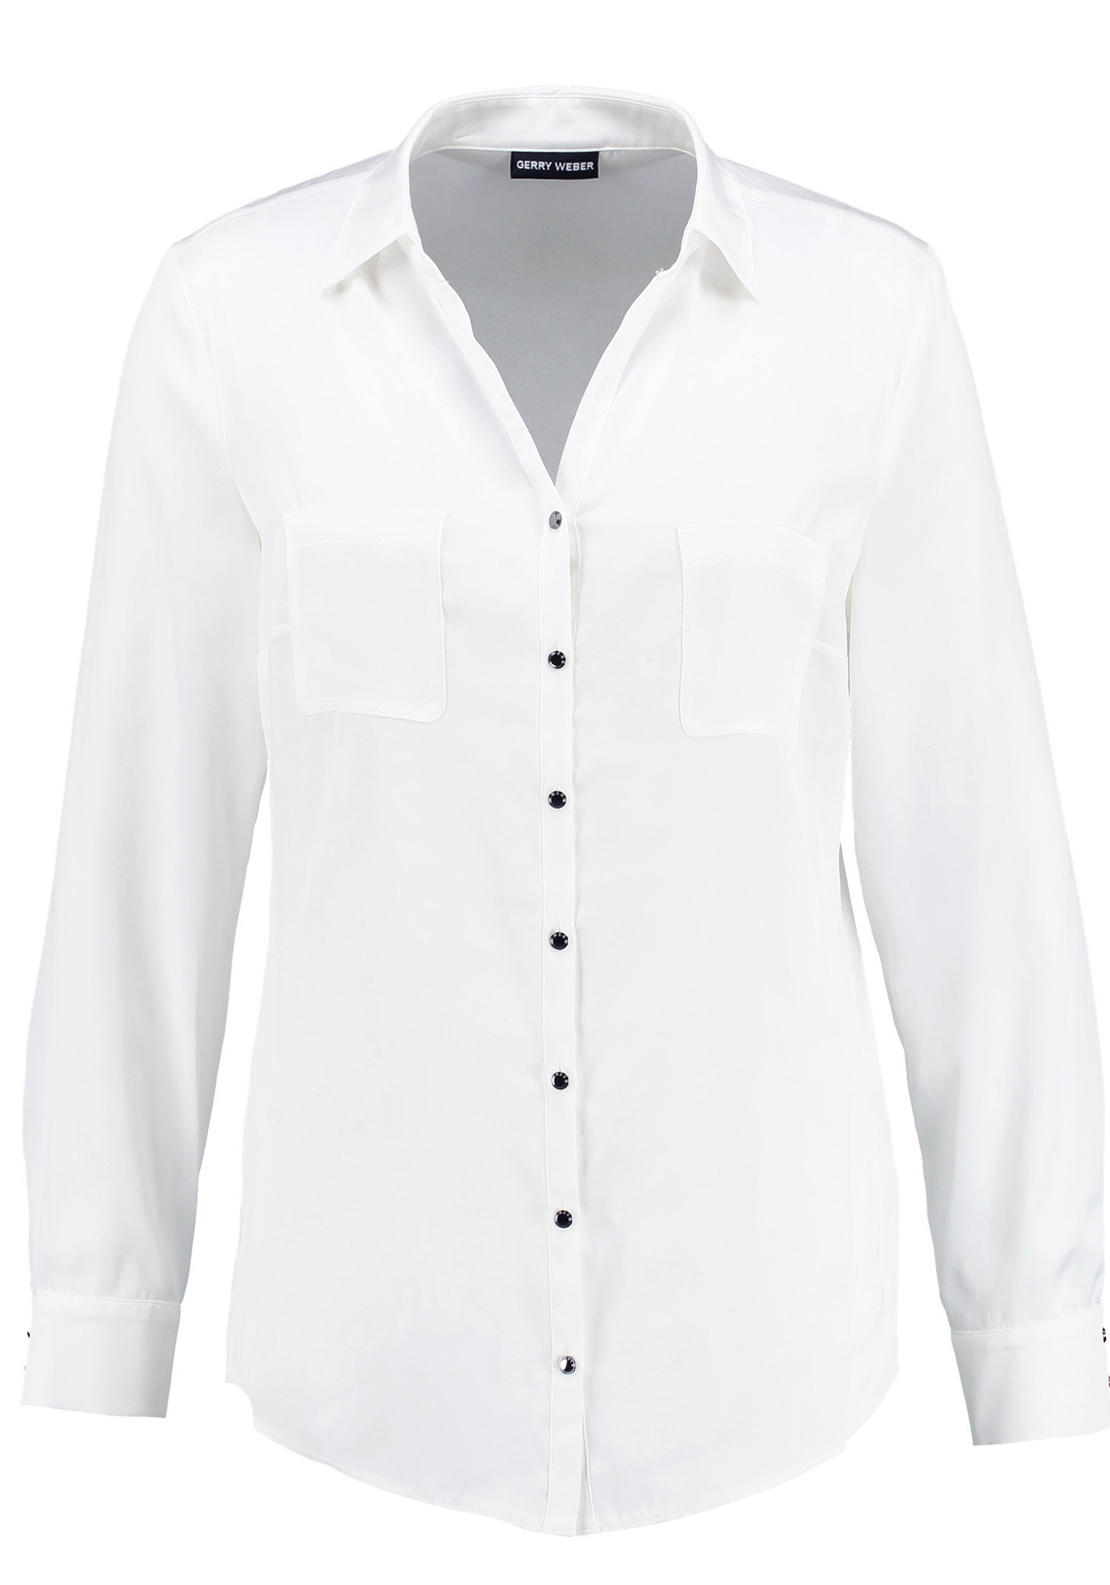 Gerry Weber Classic Long Sleeve Blouse, White